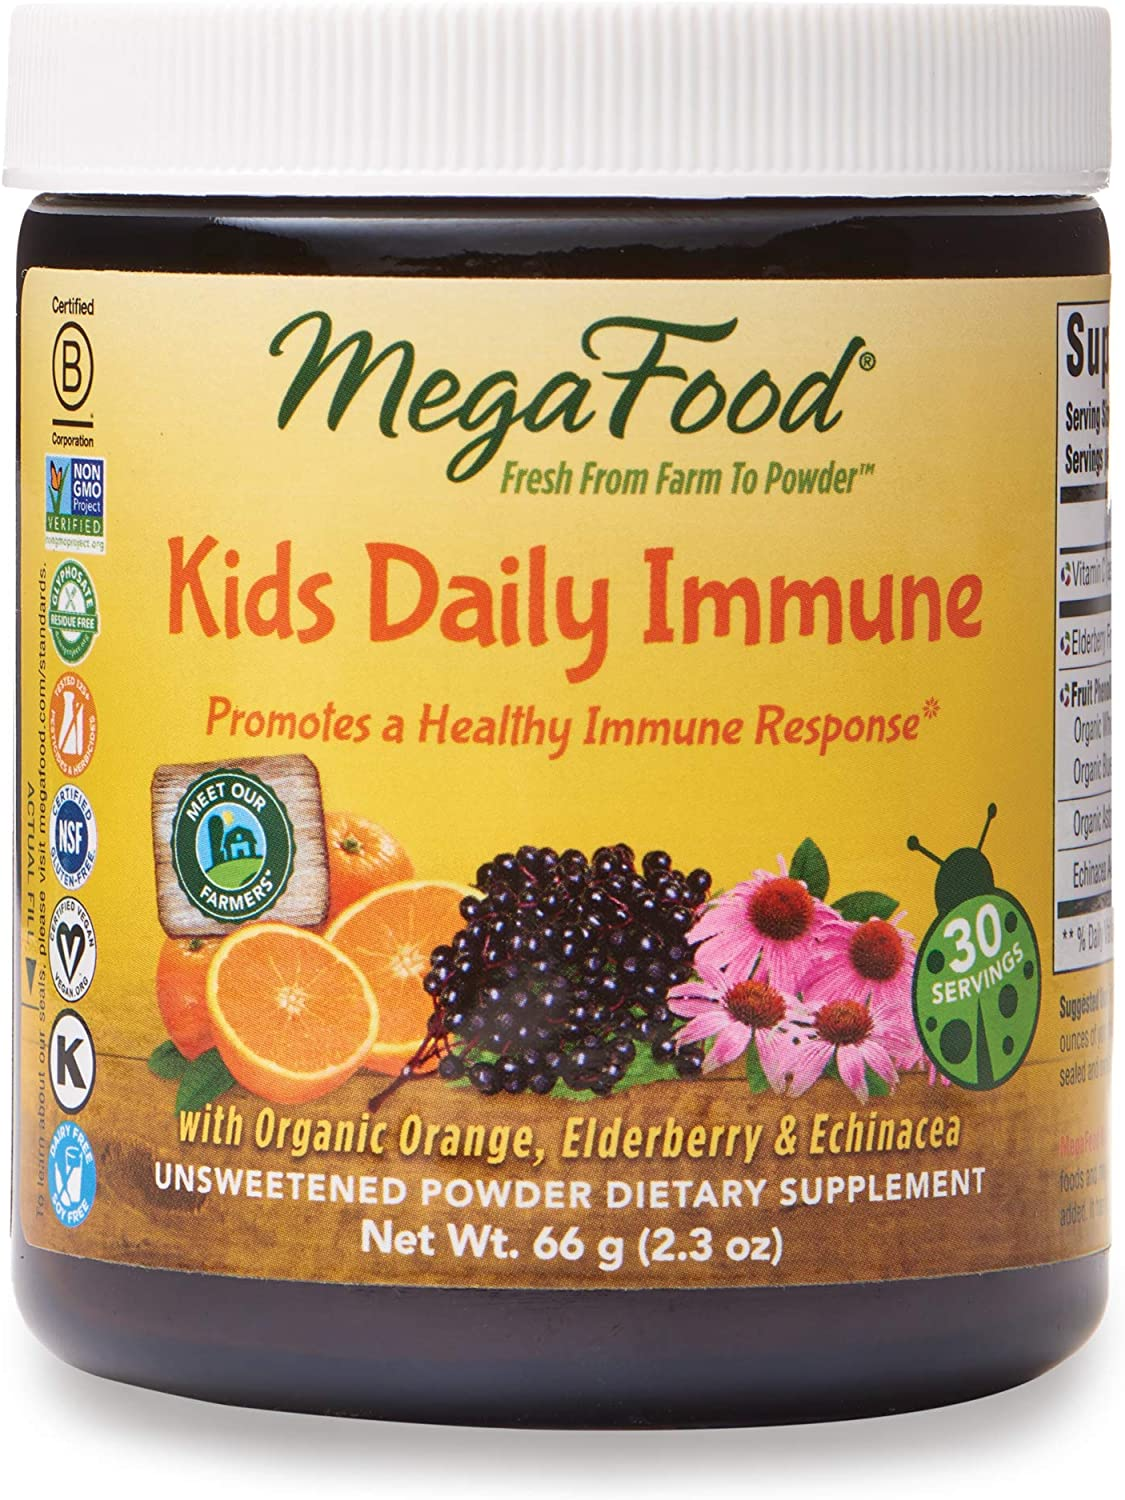 MegaFood, Kids Daily Immune Booster Powder, Promotes a Healthy Immune Response, Drink Mix Supplement, Gluten Free, Vegan, 2.3 oz (30 Servings)